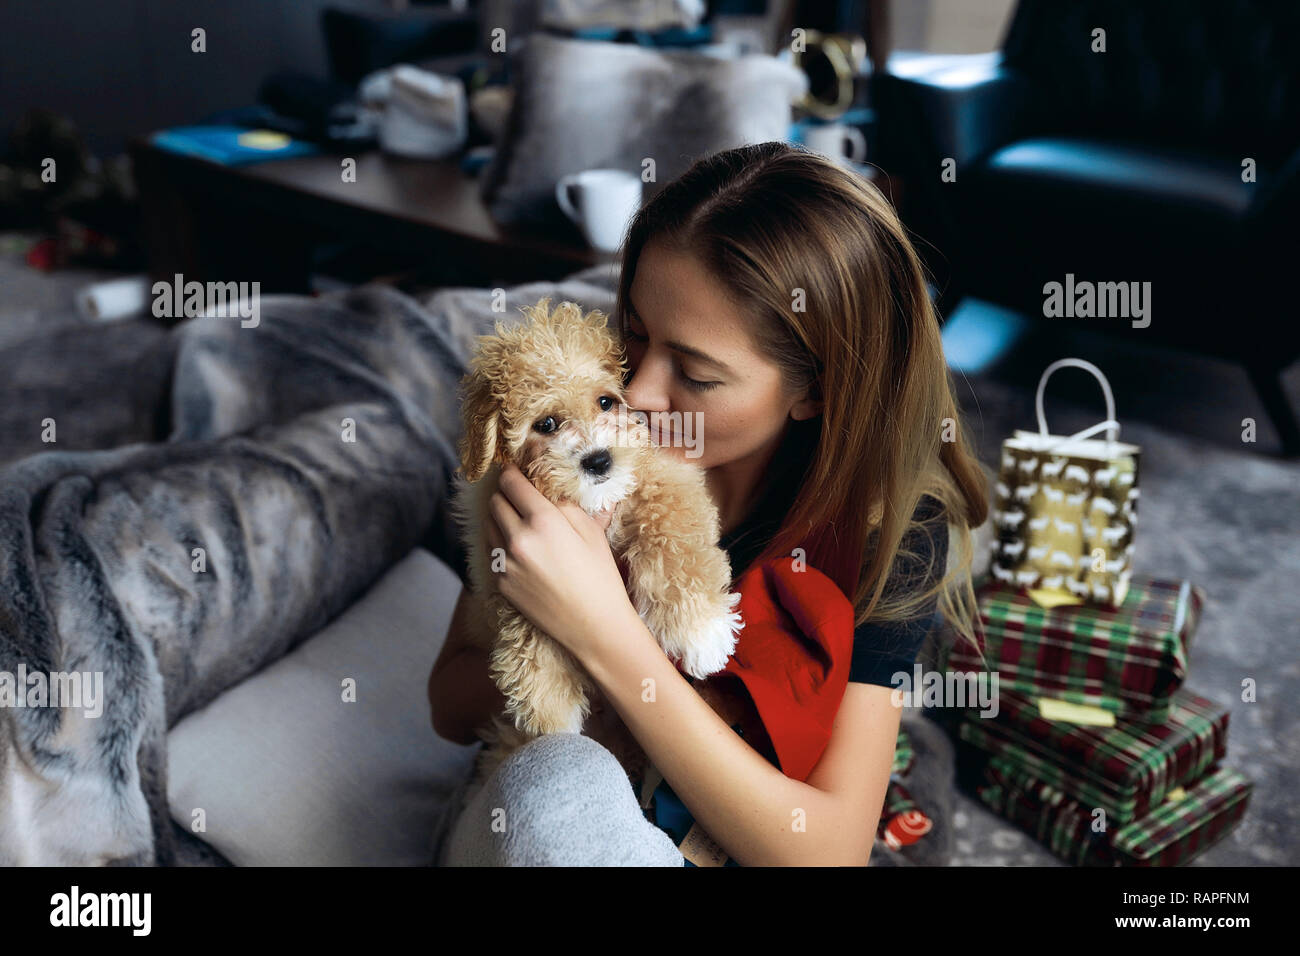 Close-up picture of the best friends tender lady and her little doggy with red curlies. Presents for christmas holidays lying on the floor. Warm hug - Stock Image